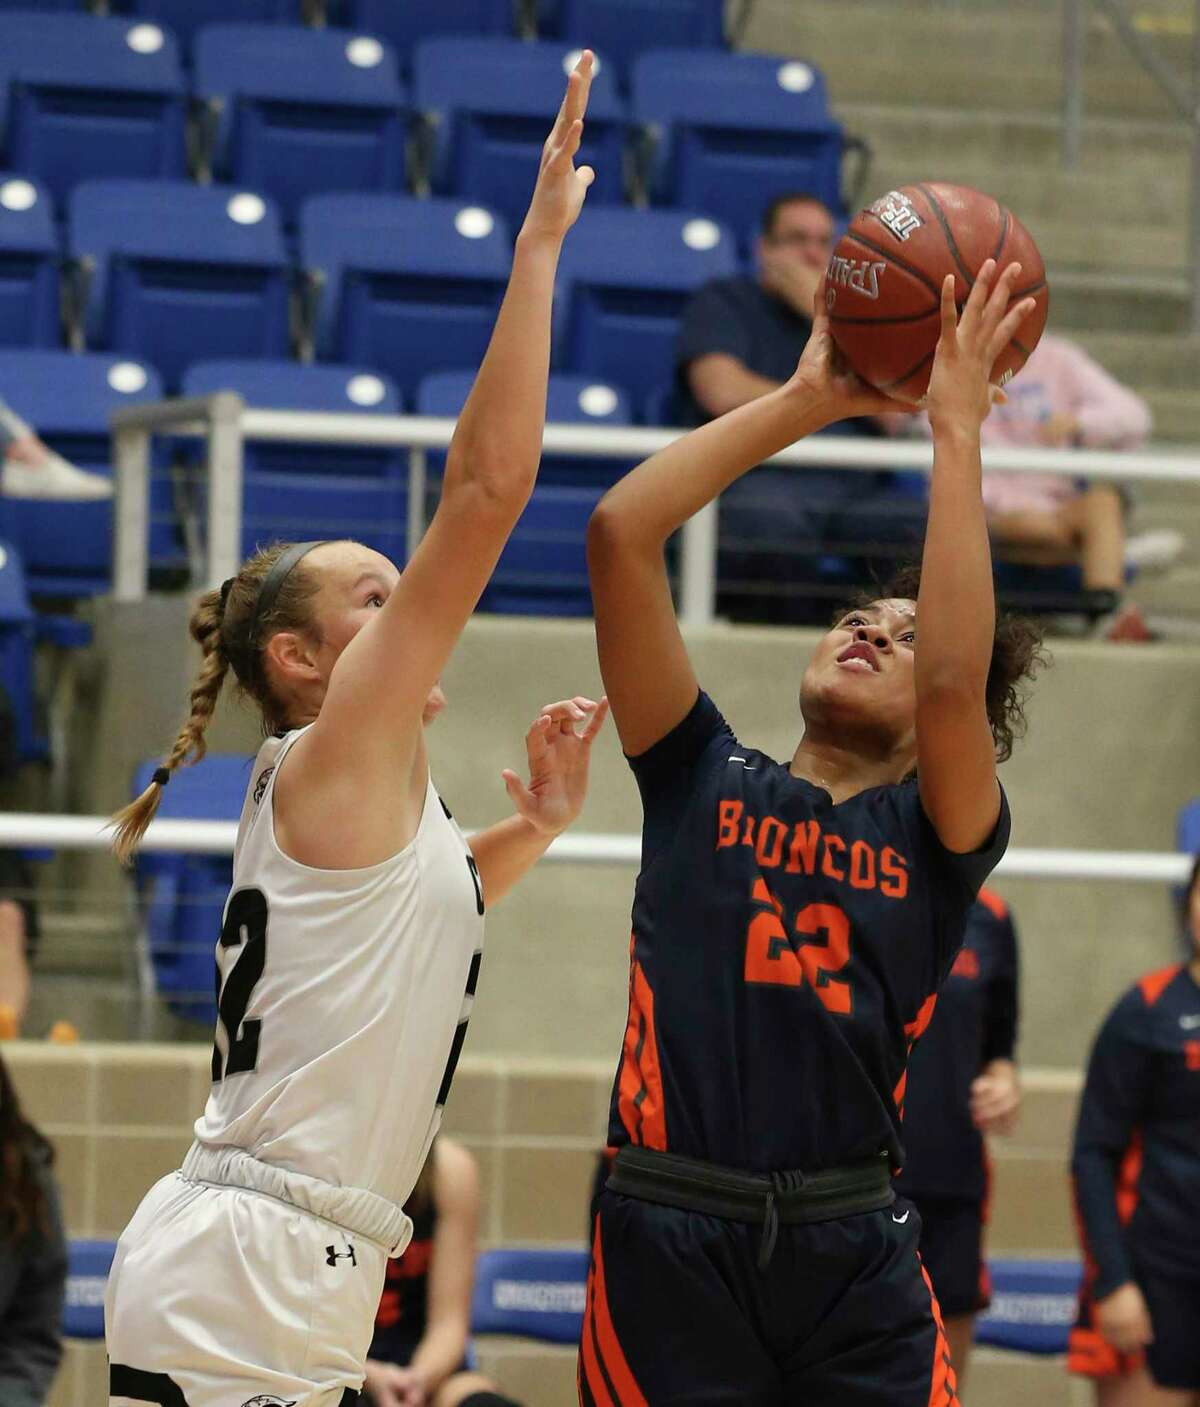 Brandeis' Alexis Parker (22) attempts a shot against Clark's Hailey Adams (left) during their girls basketball game at Northside ISD Gym on Wednesday, Jan. 22, 2020. Clark defeated Brandeis, 53-51, in double overtime.